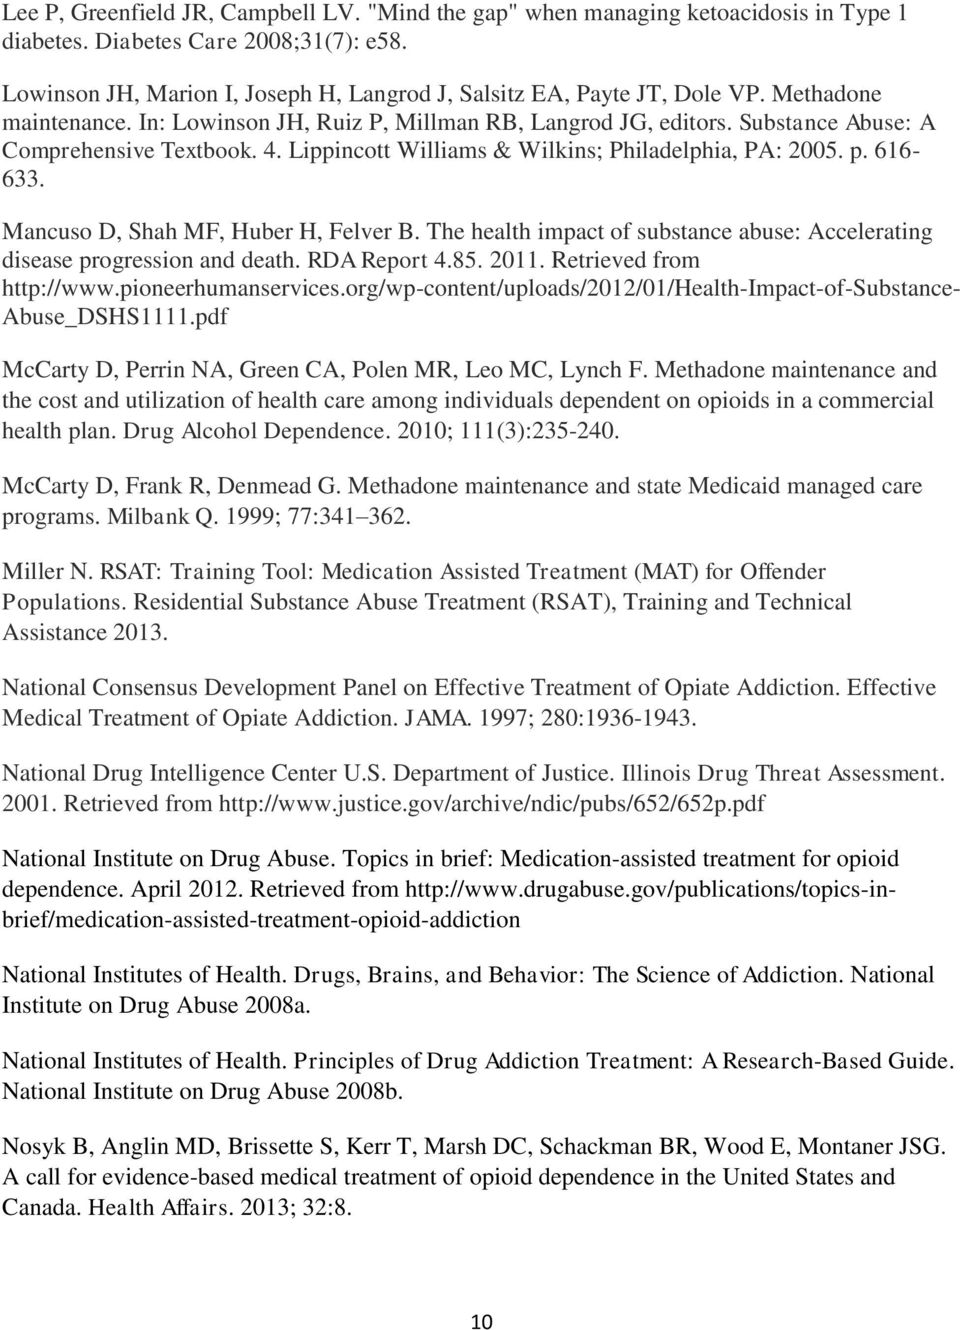 4. Lippincott Williams & Wilkins; Philadelphia, PA: 2005. p. 616-633. Mancuso D, Shah MF, Huber H, Felver B. The health impact of substance abuse: Accelerating disease progression and death.